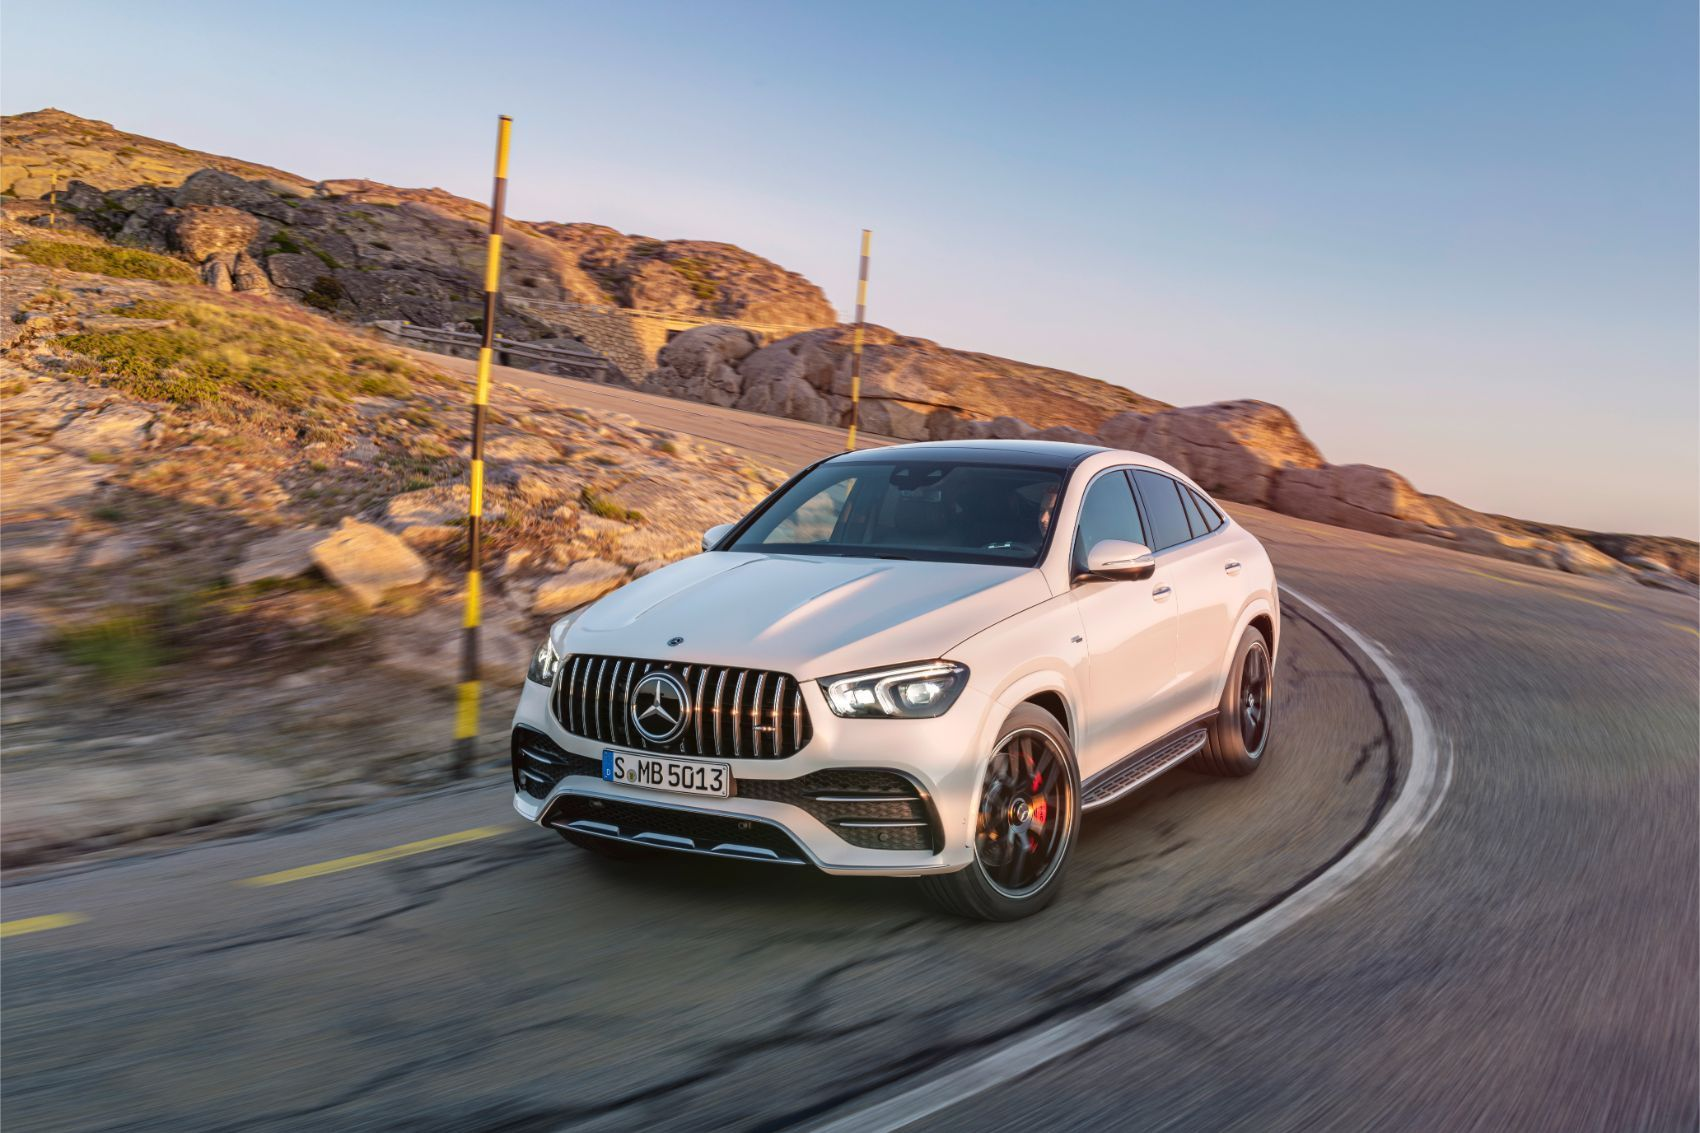 2021 Mercedes-AMG GLE 53 Coupe: Anything But Conventional